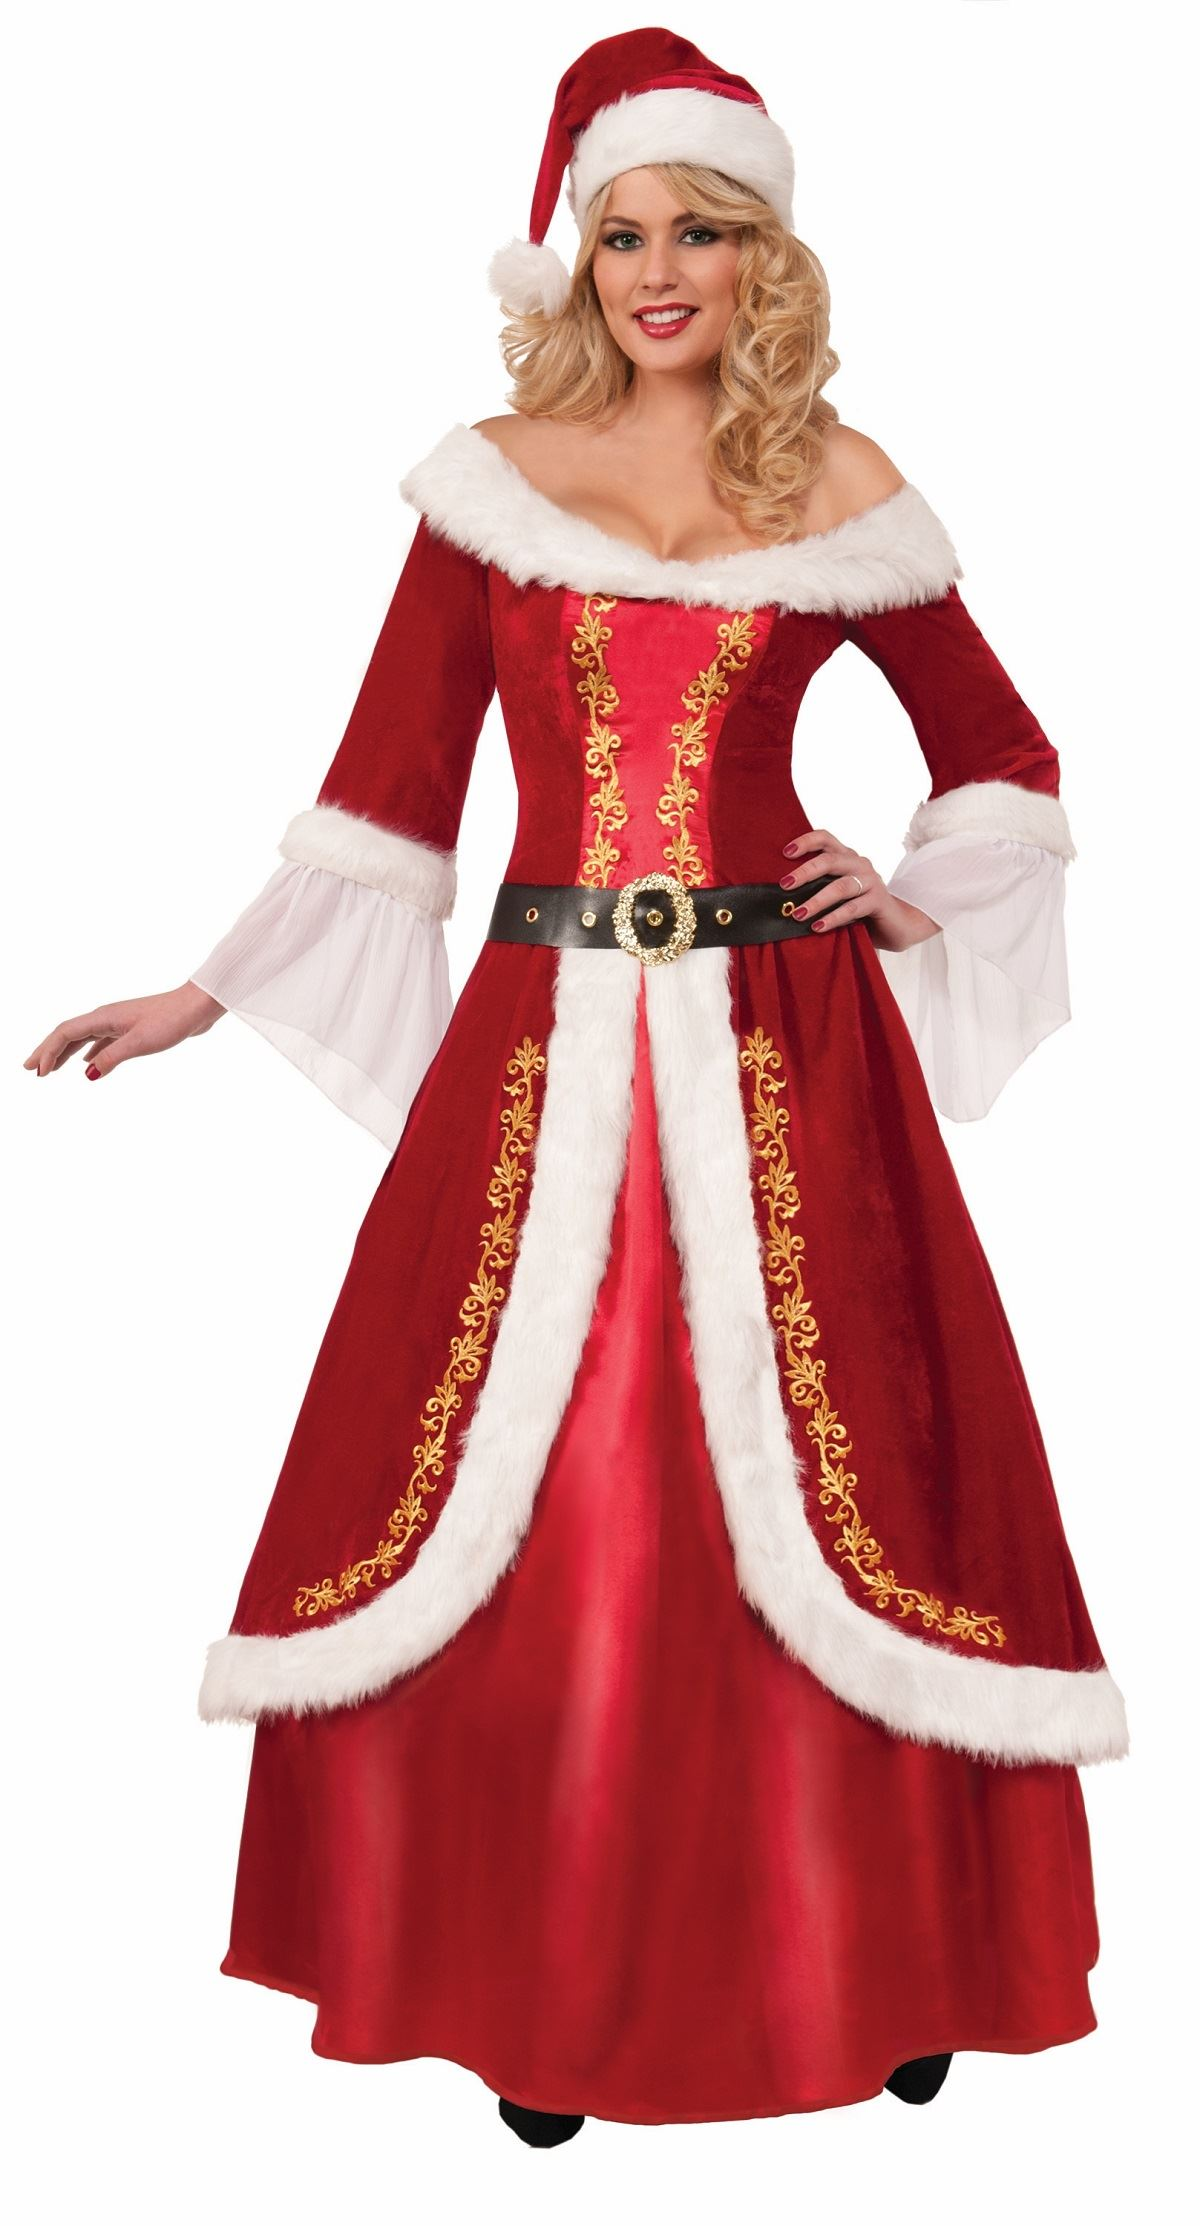 Adult Santa Mrs Claus Deluxe Woman Christmas Costume | $125.99 | The ...